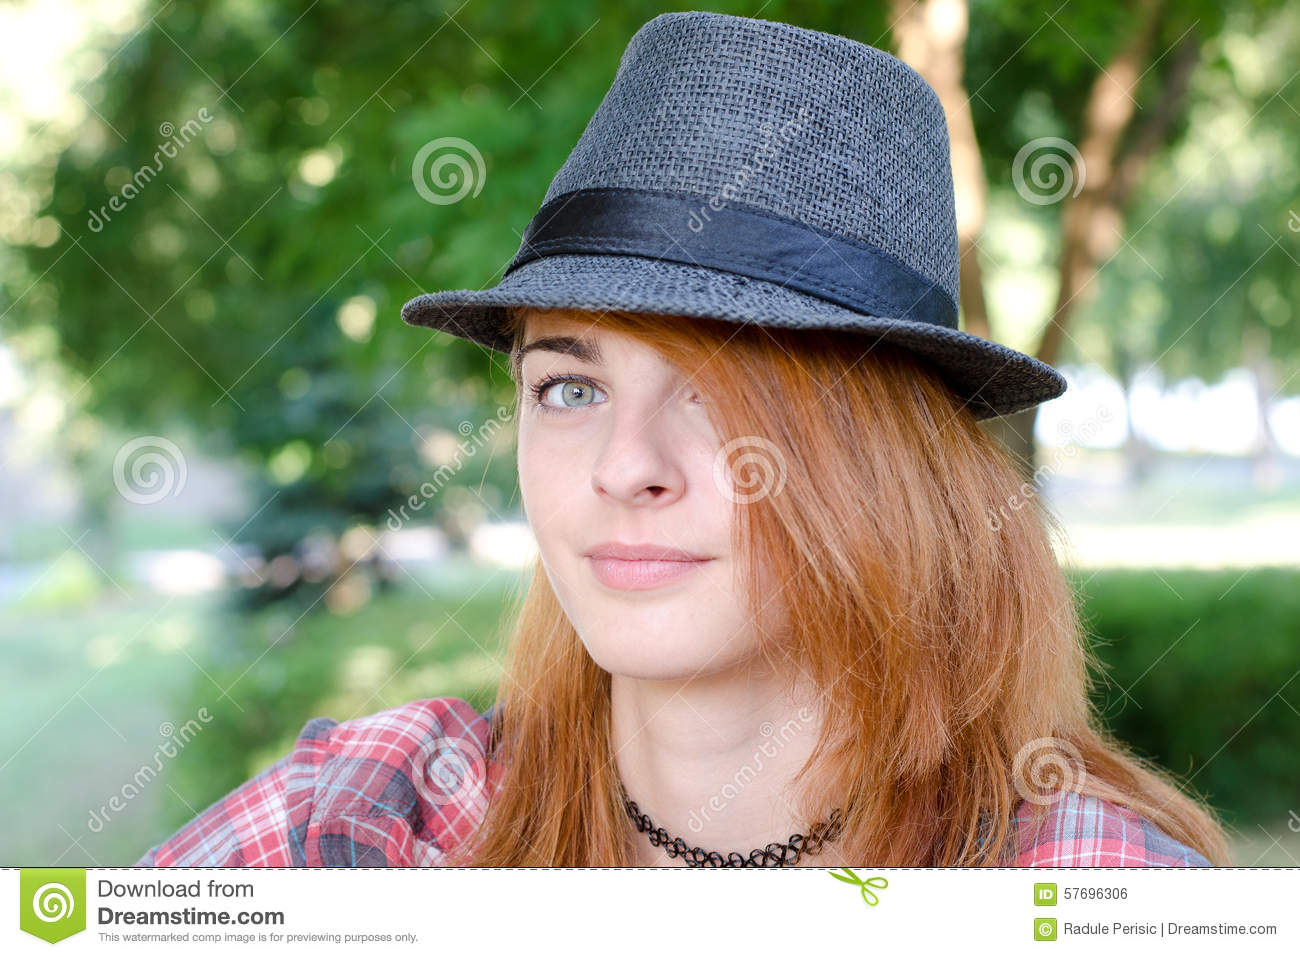 Girl with fedora hat stock photo. Image of female e6fc66e64a1